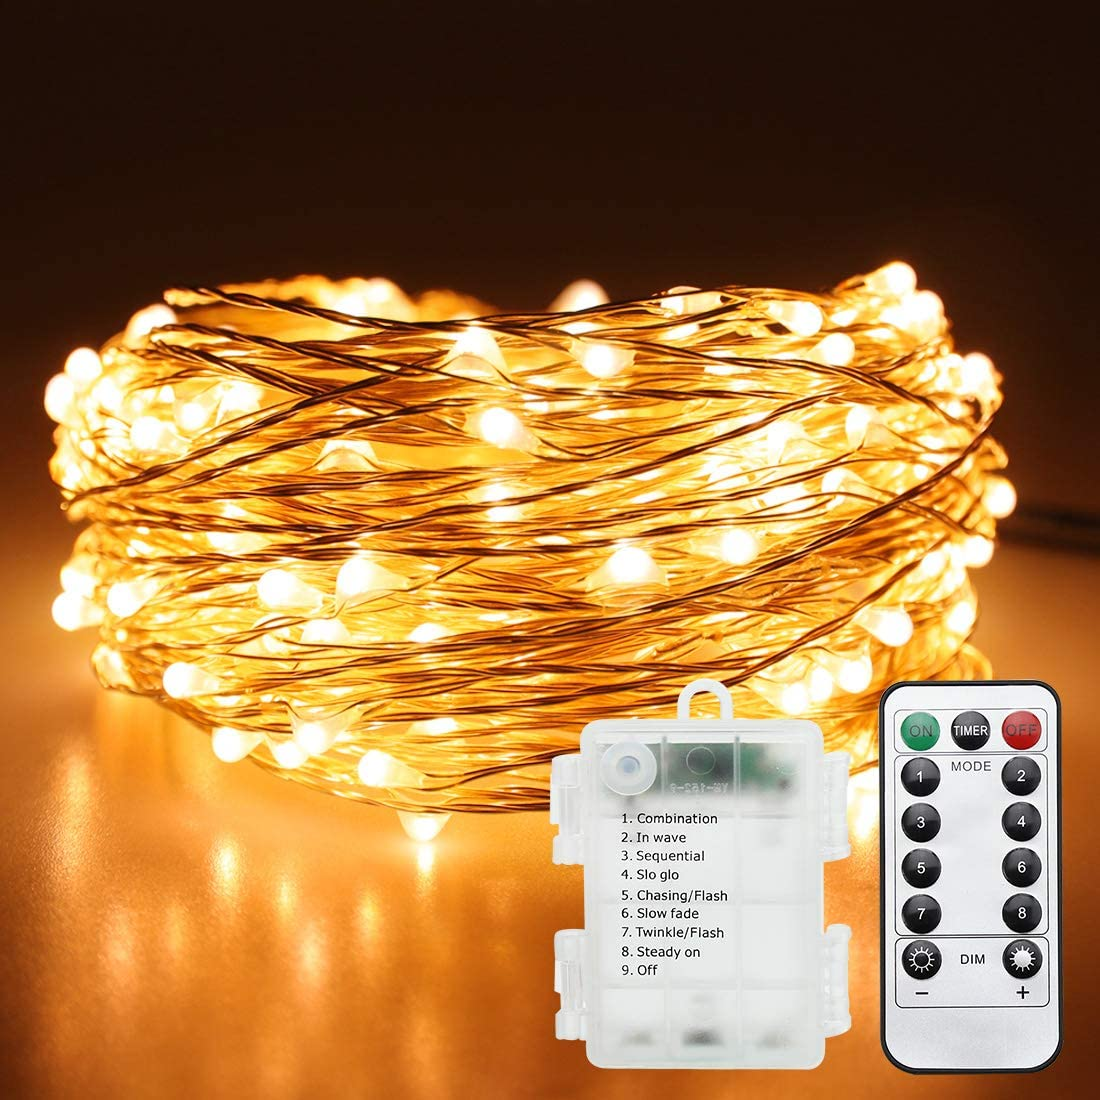 Led Battery Fairy Lights,16.4 Feet Remote Fairy Lights,50 LEDs Waterproof Flexible String Lights Battery Operated for Bedroom Home Wedding Christmas Festivals Warm White